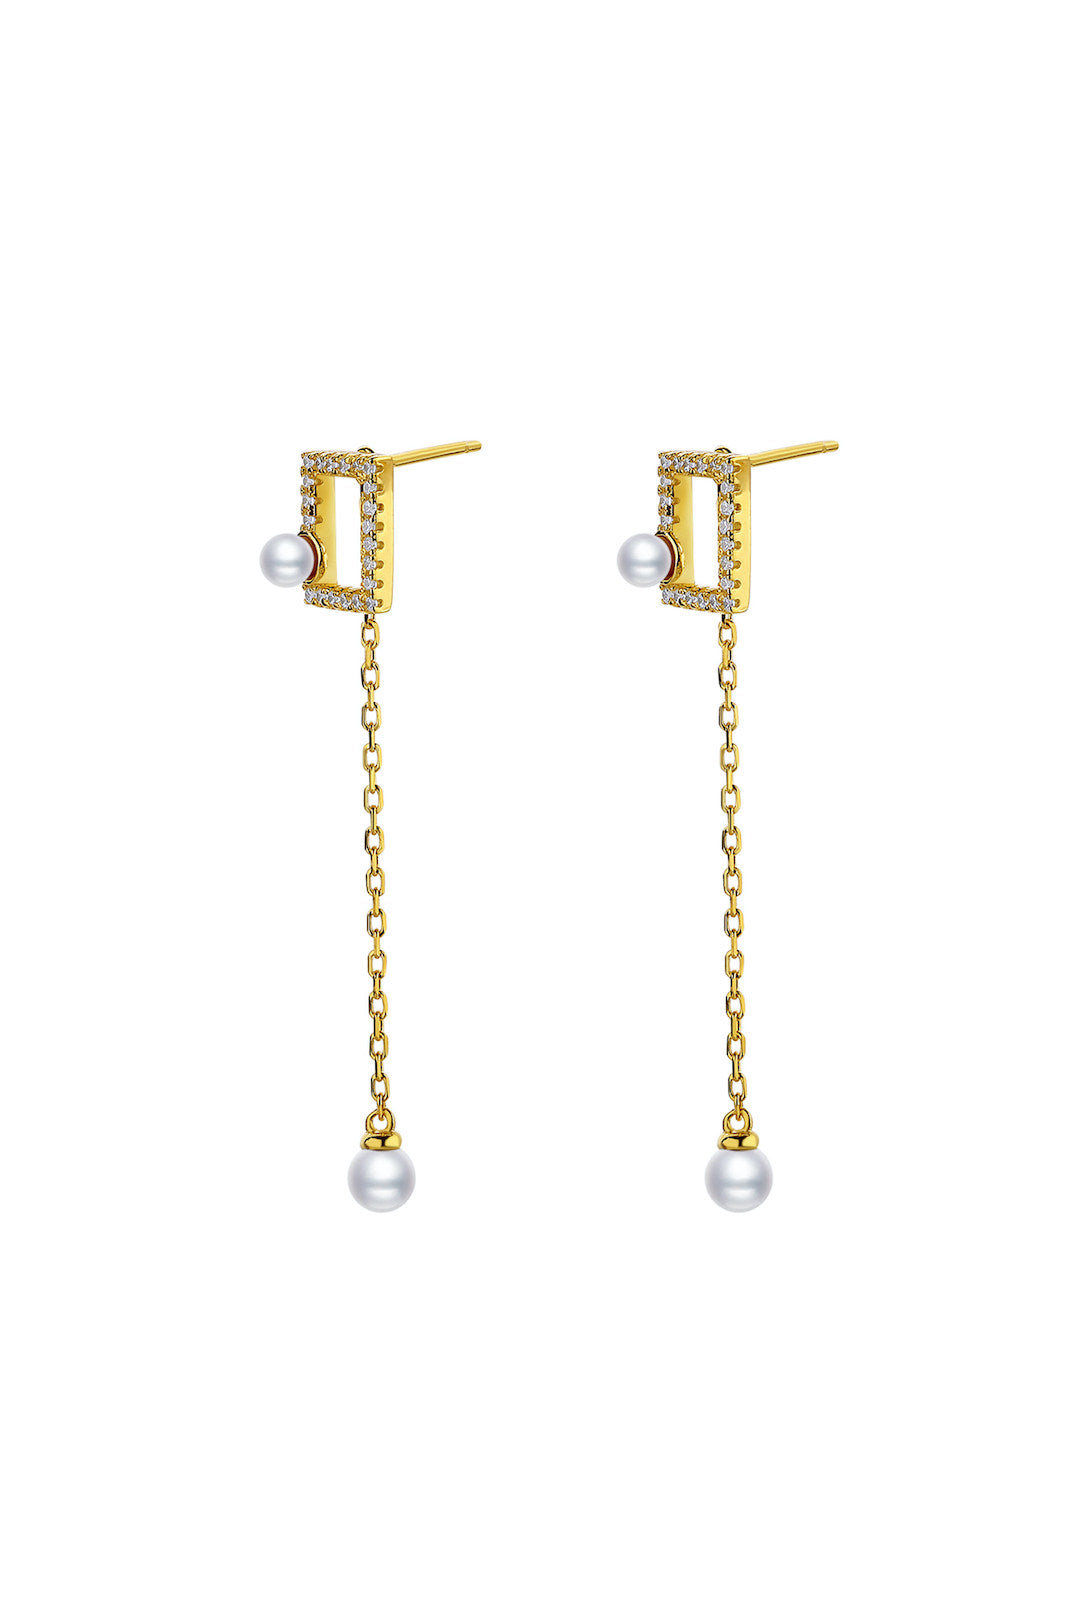 Gold Plated Geometrical Silver Earrings - Mini Rectangle